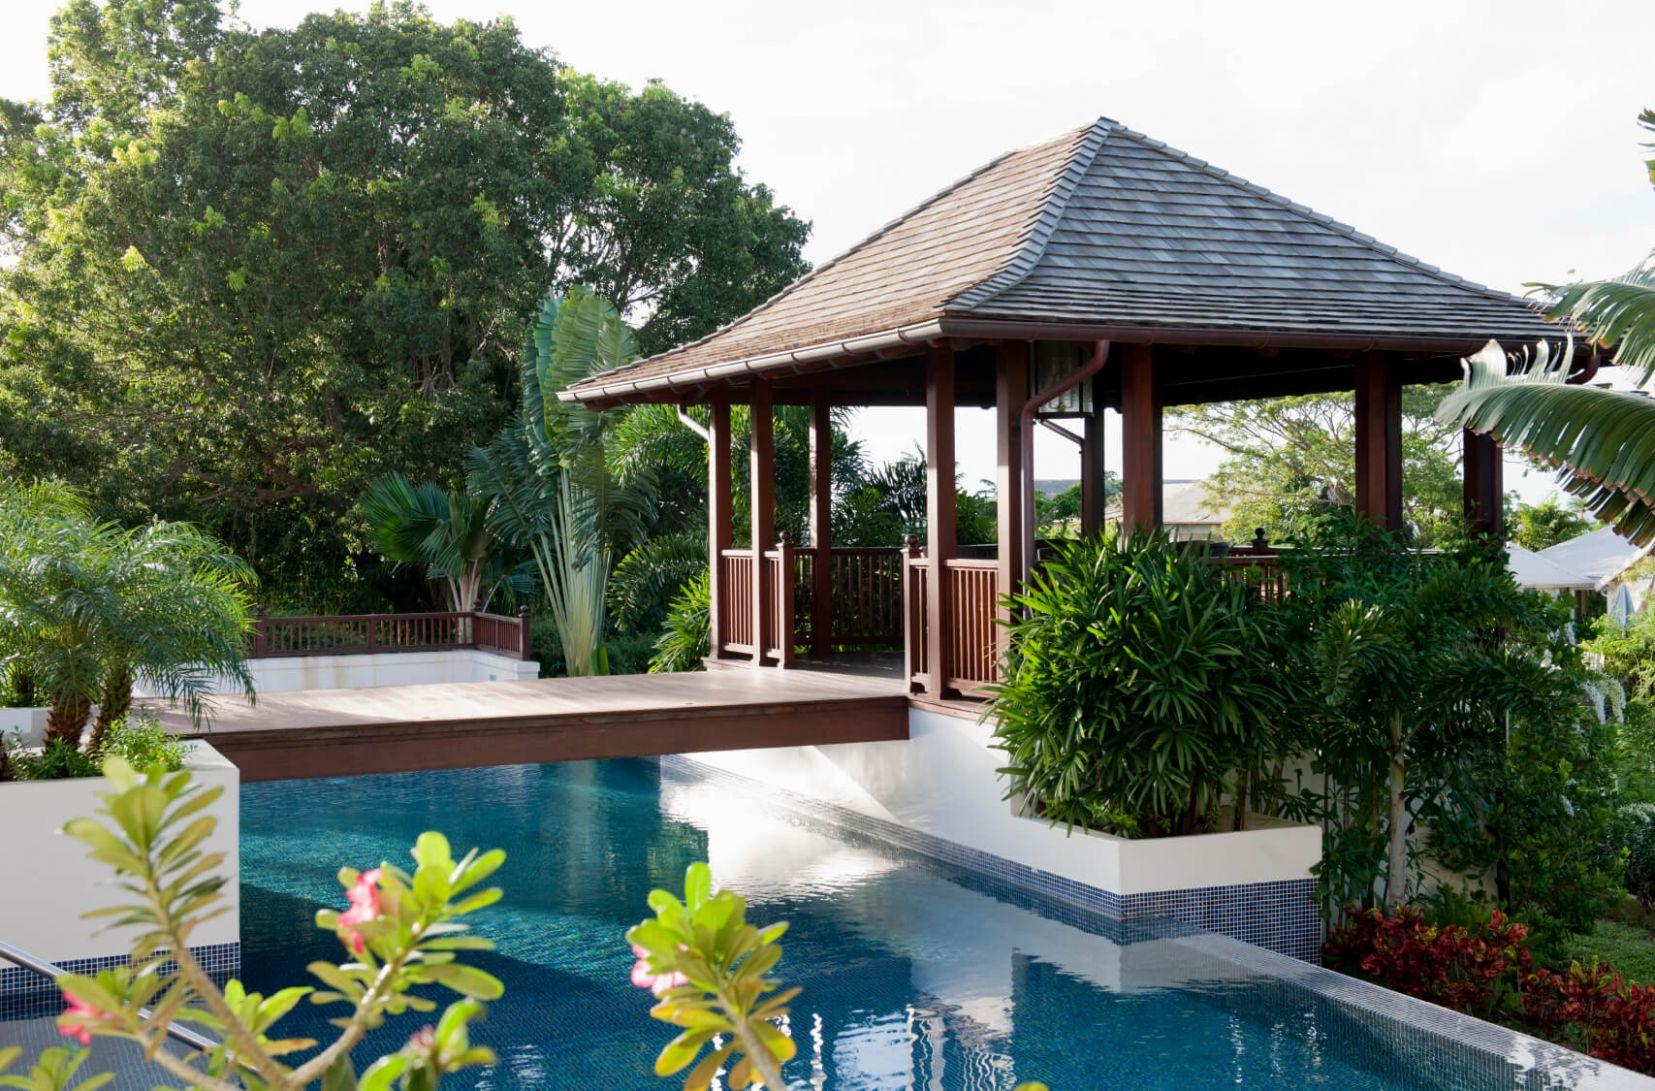 9 Glorious Pool Gazebo Ideas - pool gazebo ideas